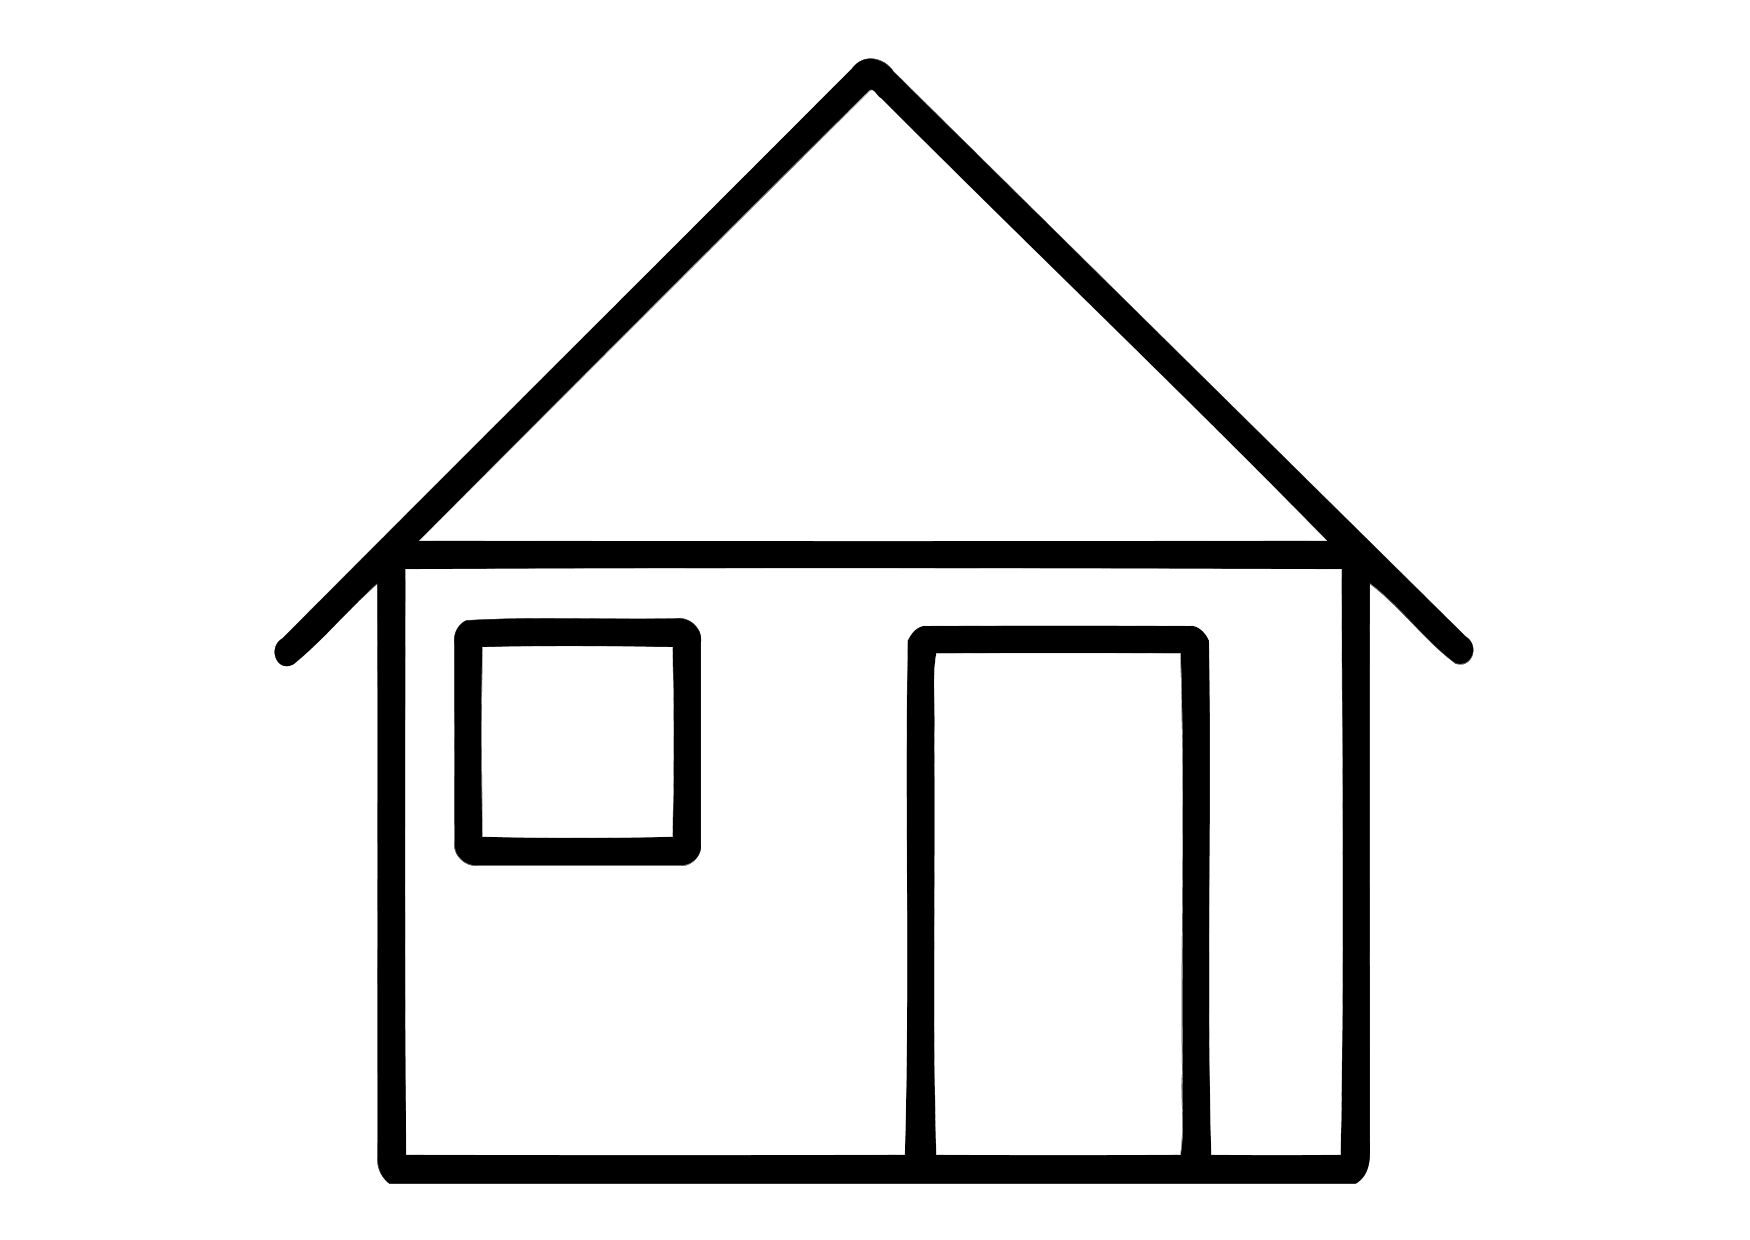 Coloring image of house